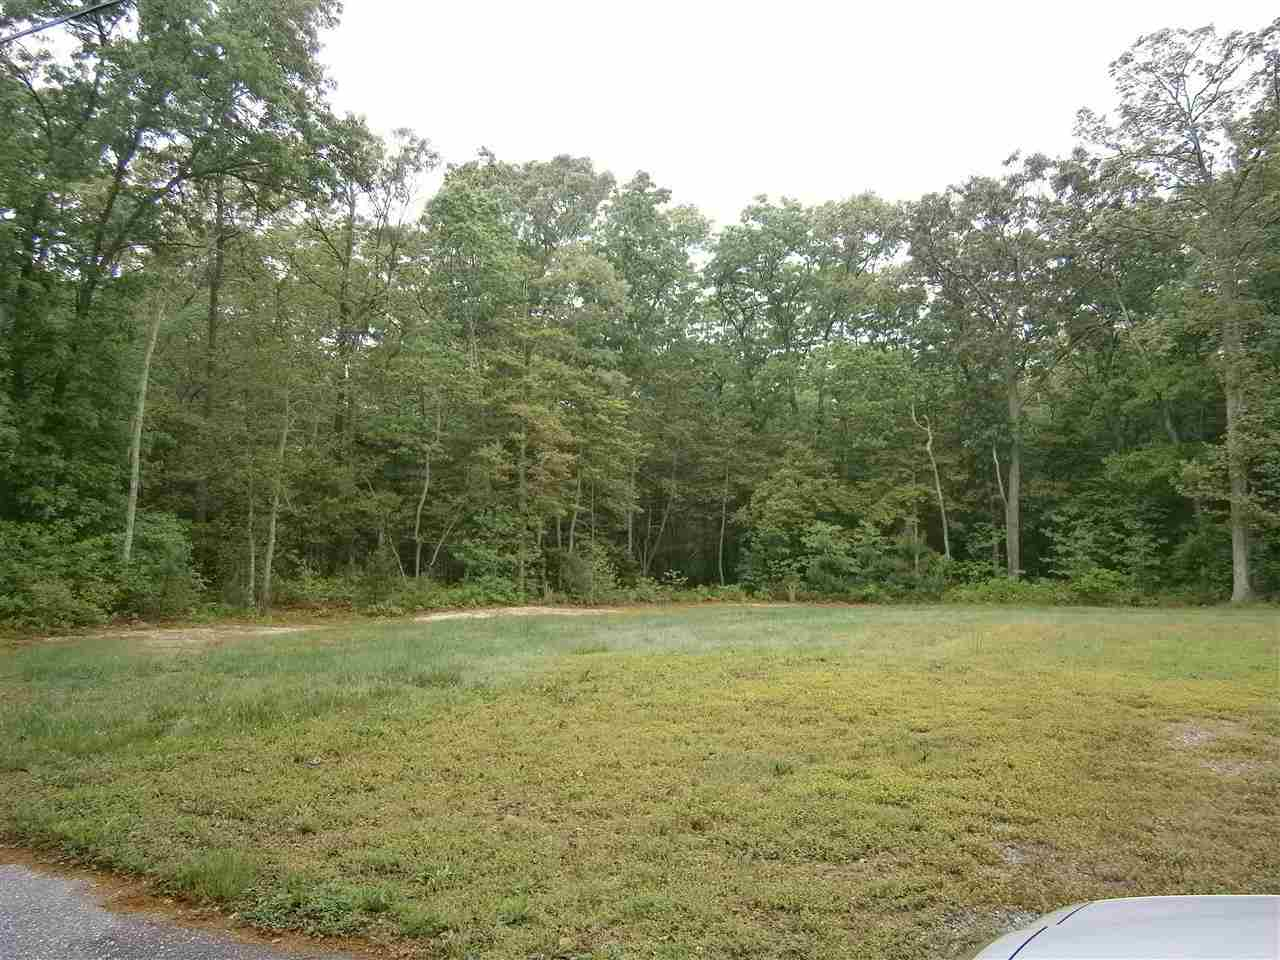 Land / Lots for Sale at 12 Whiting Lane 12 Whiting Lane Swainton, New Jersey 08210 United States